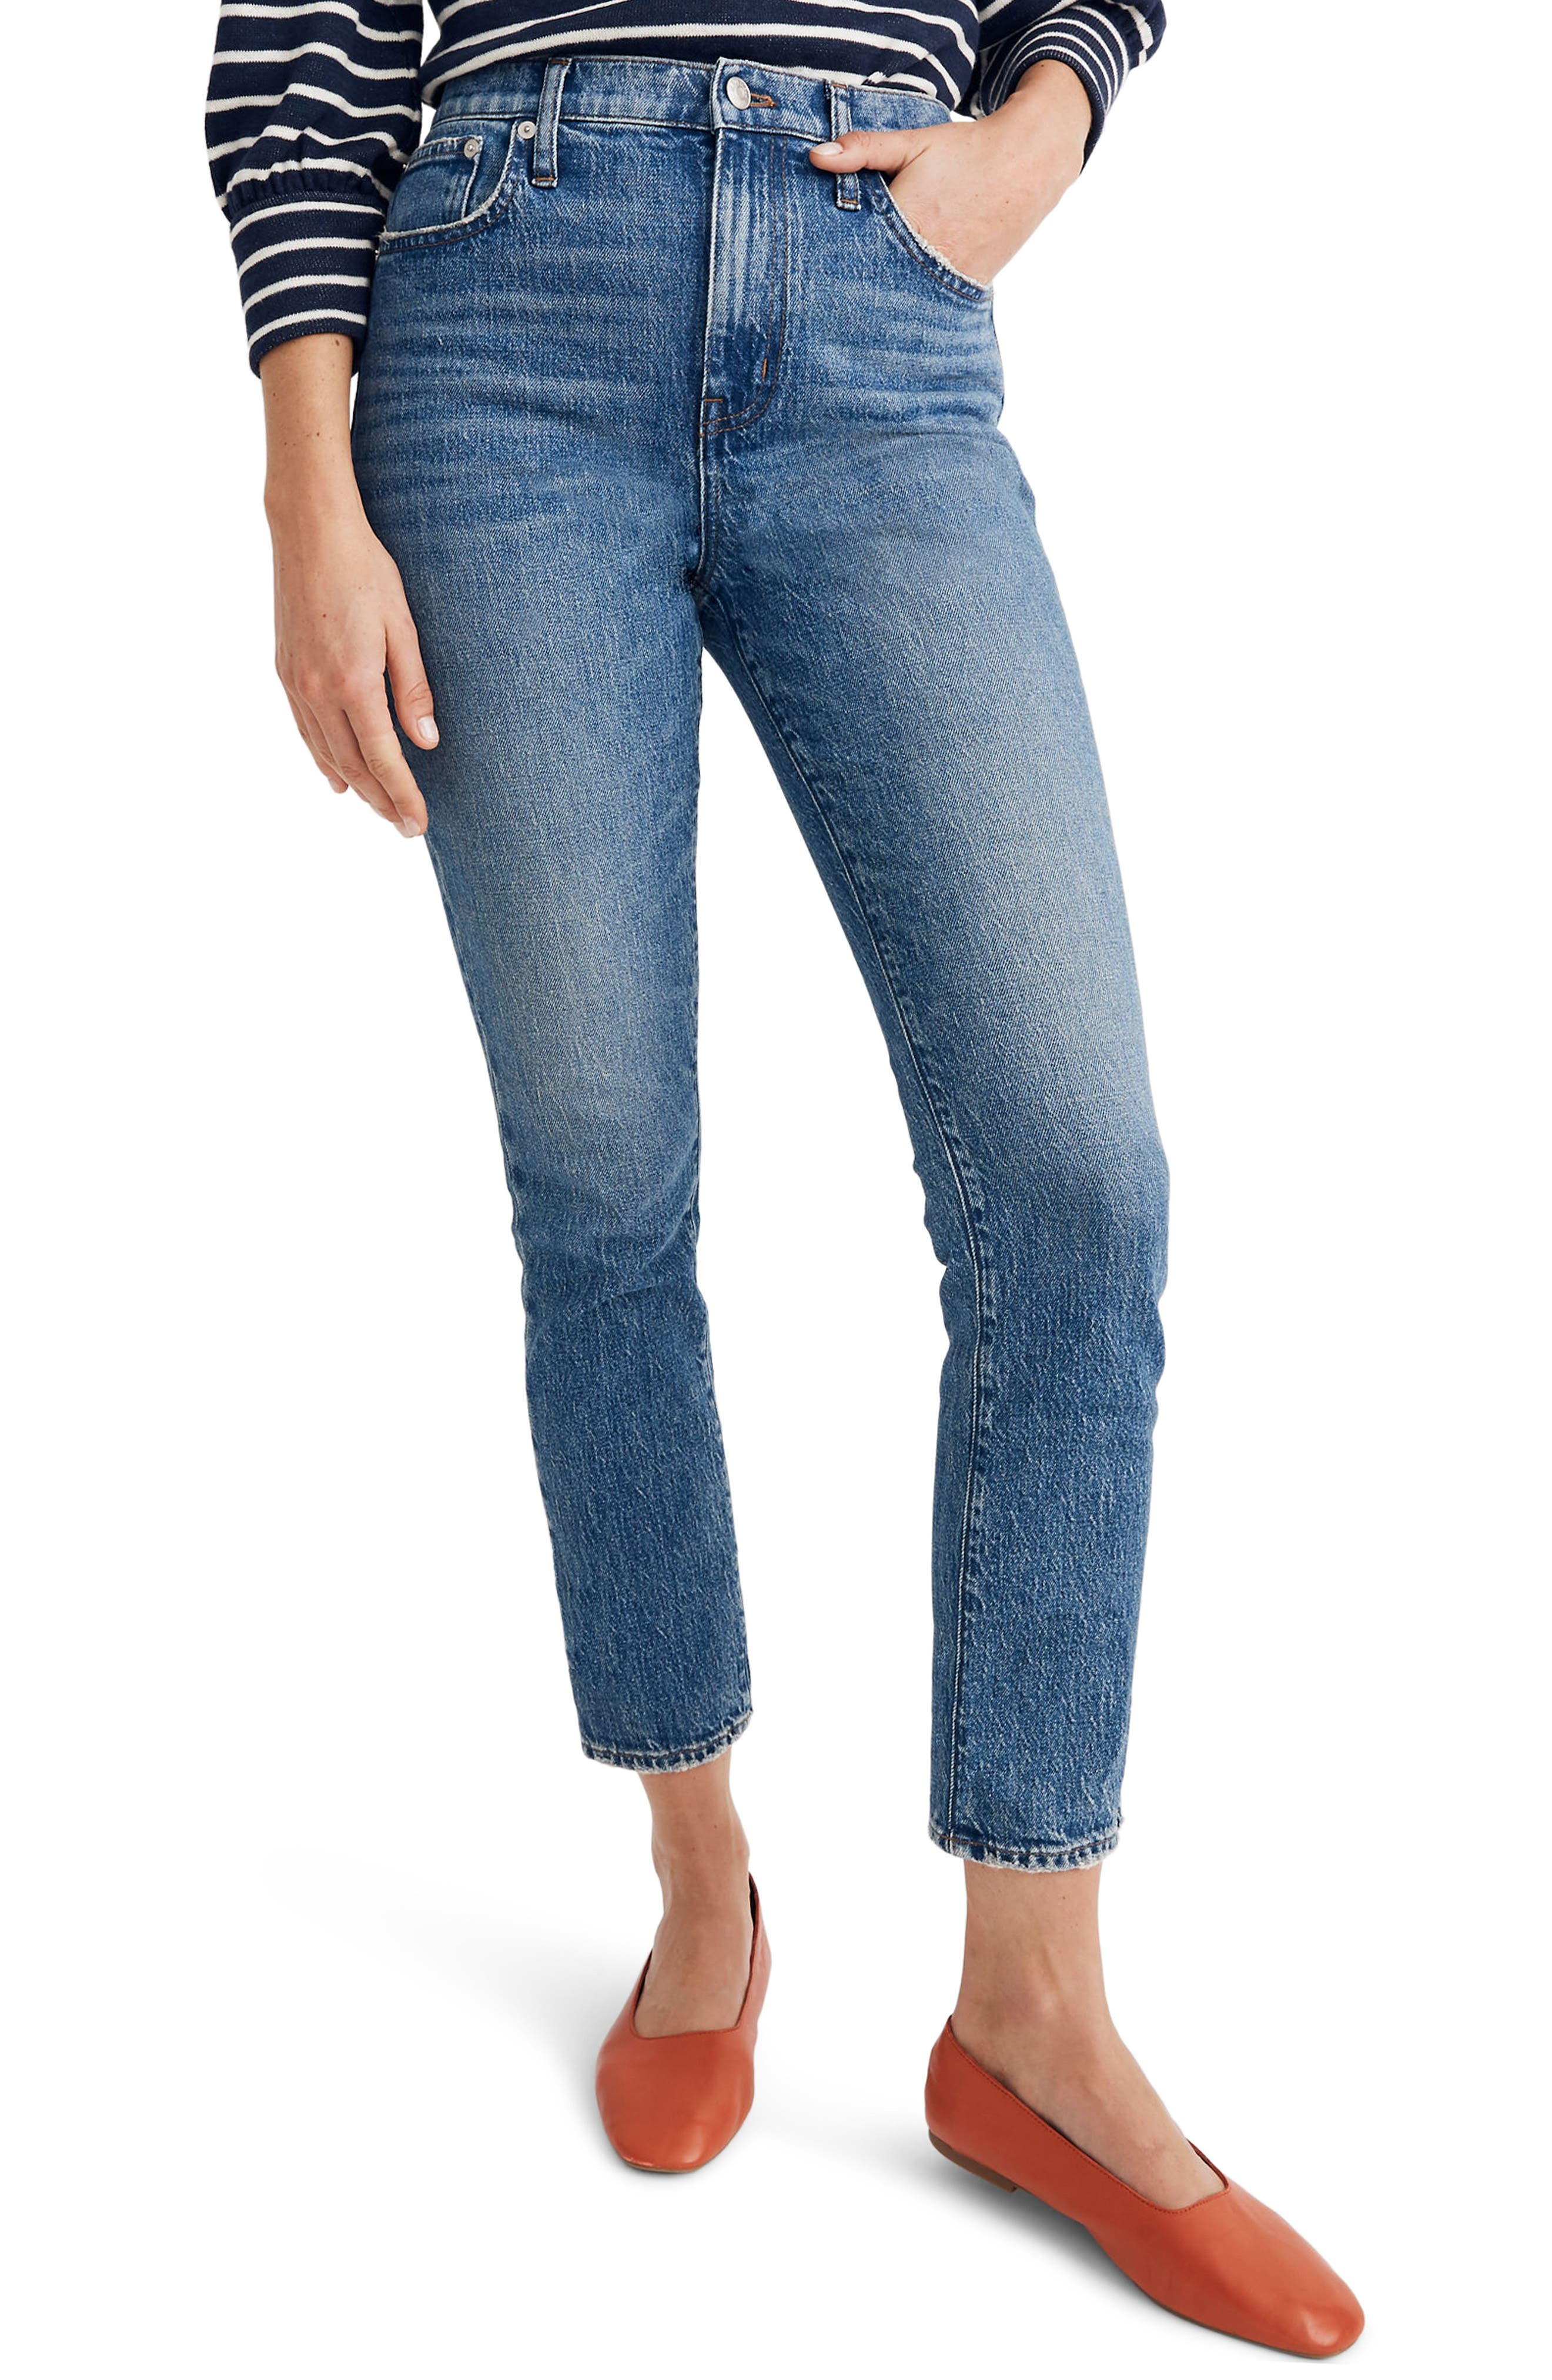 Madewell The High Rise Slim Boy Jeans (Lavern Wash)